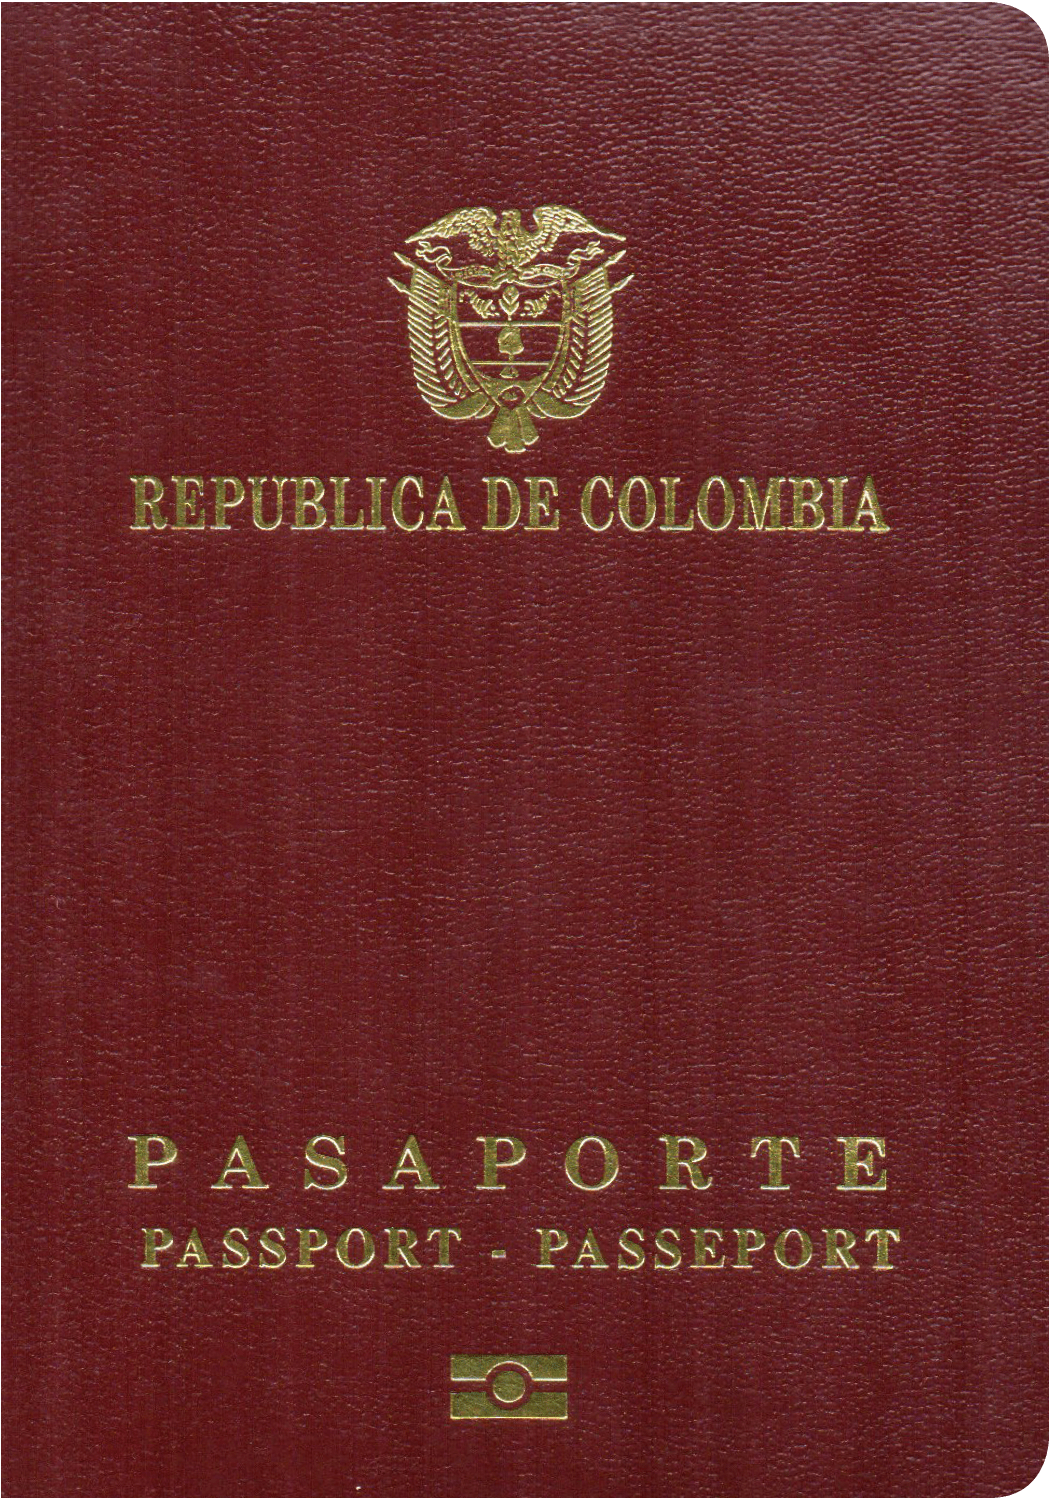 A regular or ordinary Colombian passport - Front side